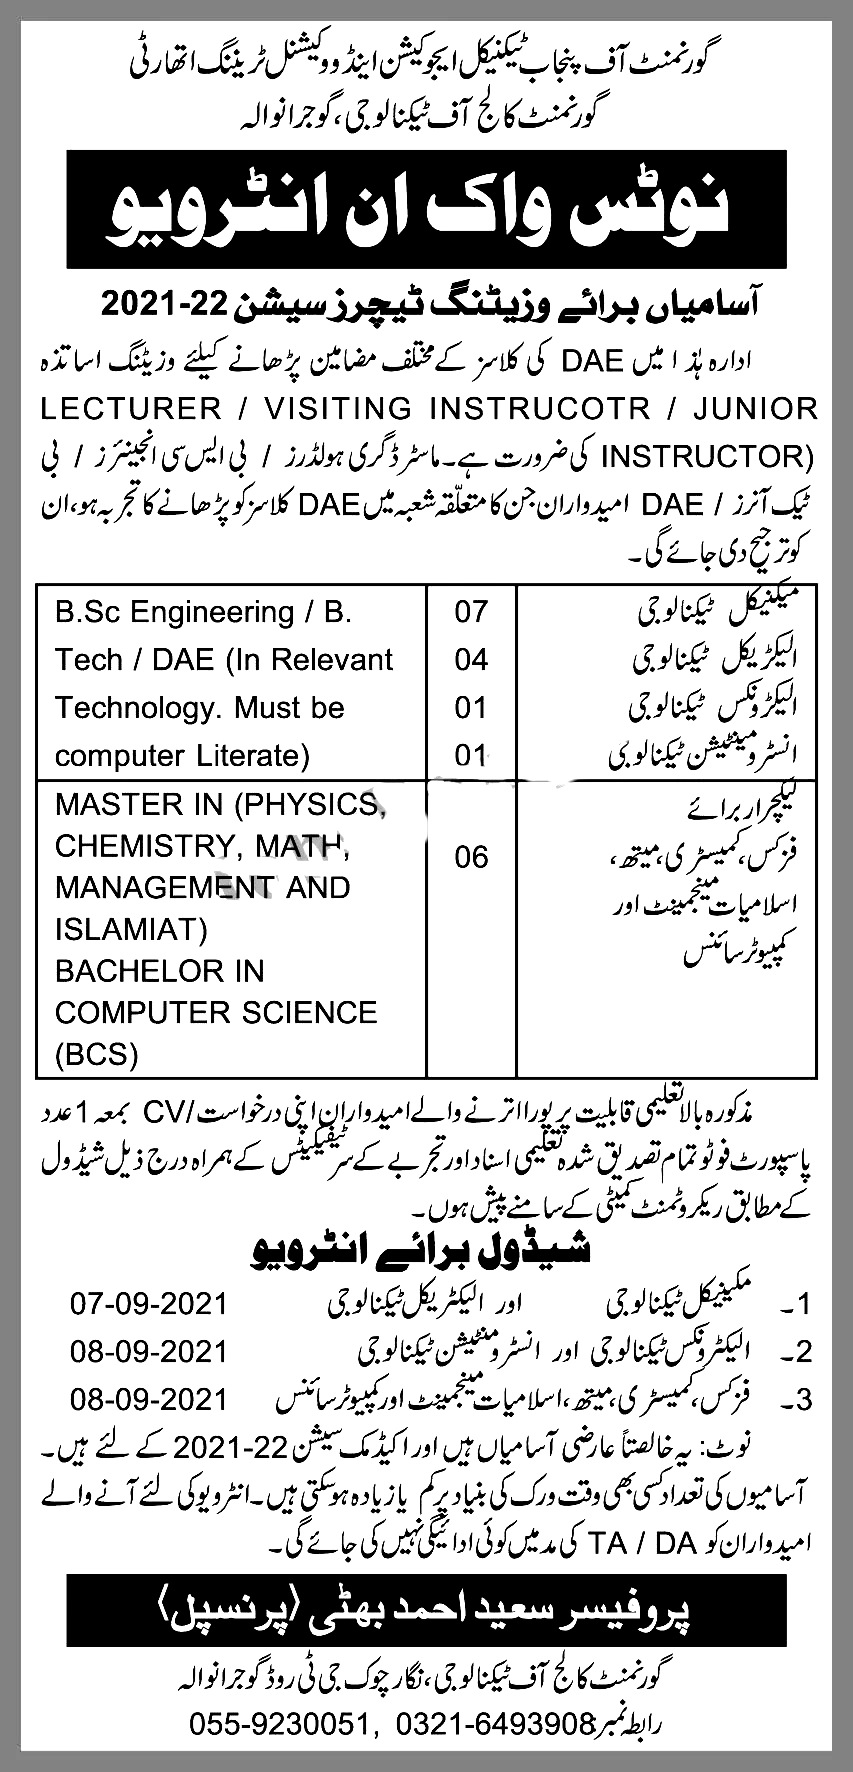 Government College of Technology TEVTA Gujranwala Jobs 2021